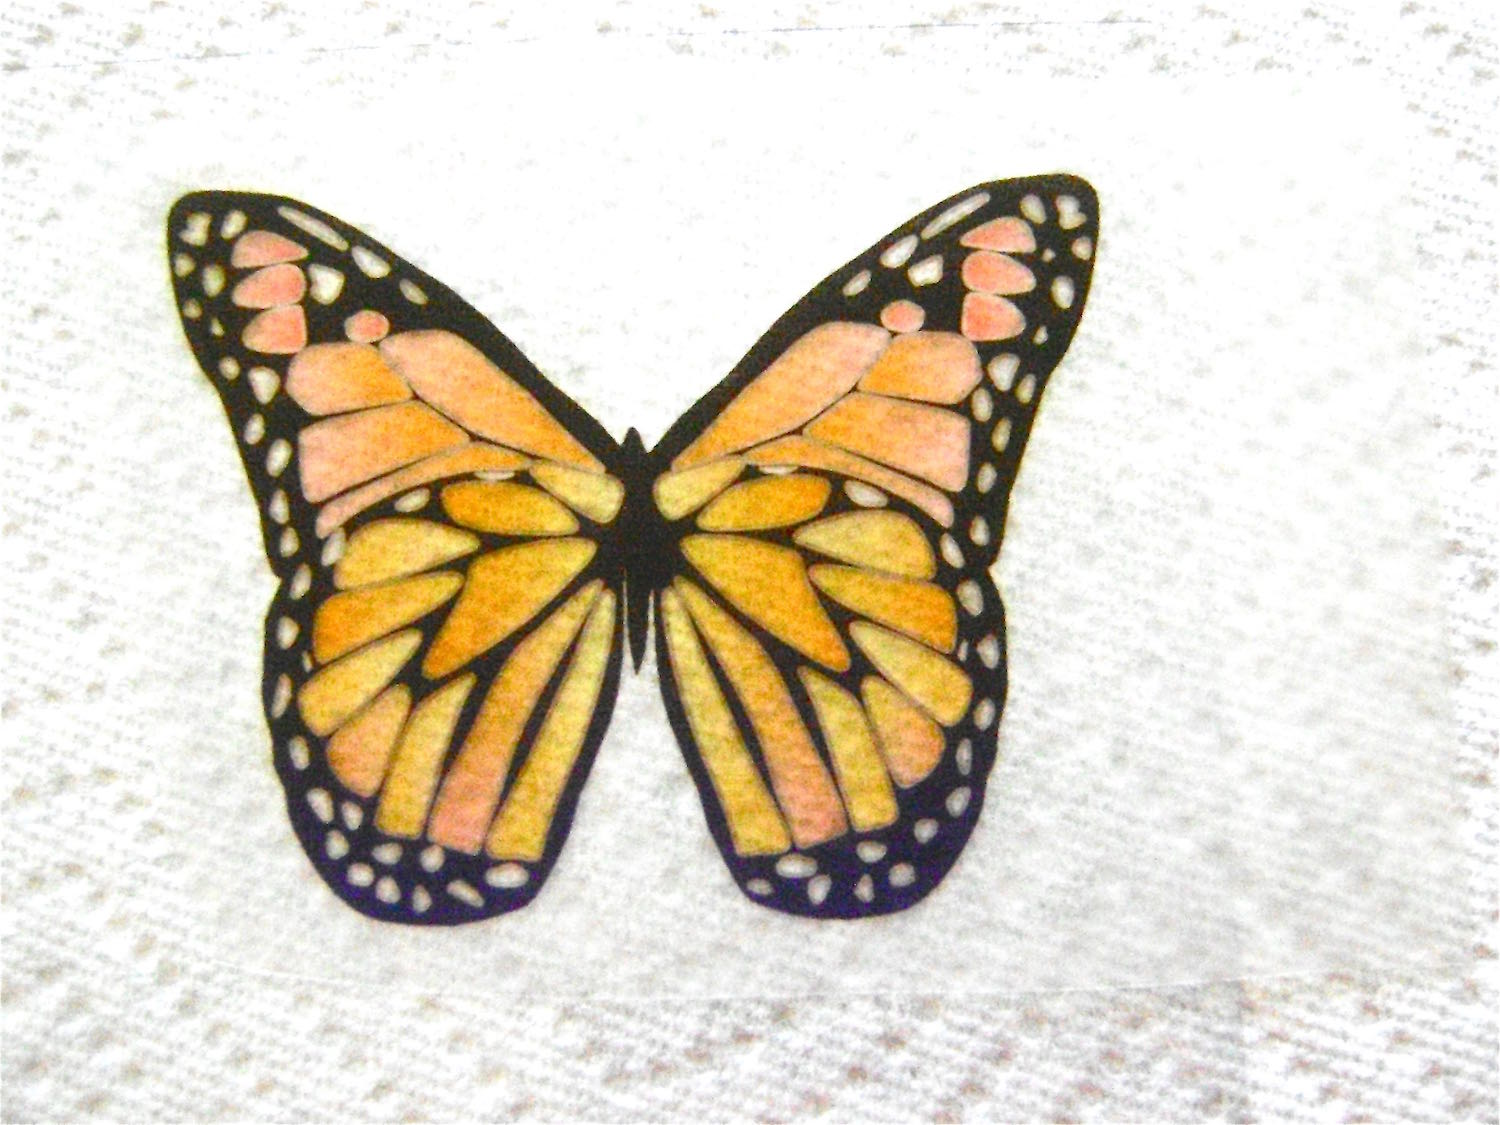 step 4 - Carefully peel the backing from the film. Lay the butterfly wing on the clear plastic sheet, glue side down, smoothing it as release it. The wings should be wrinkle free and attached on all edges.